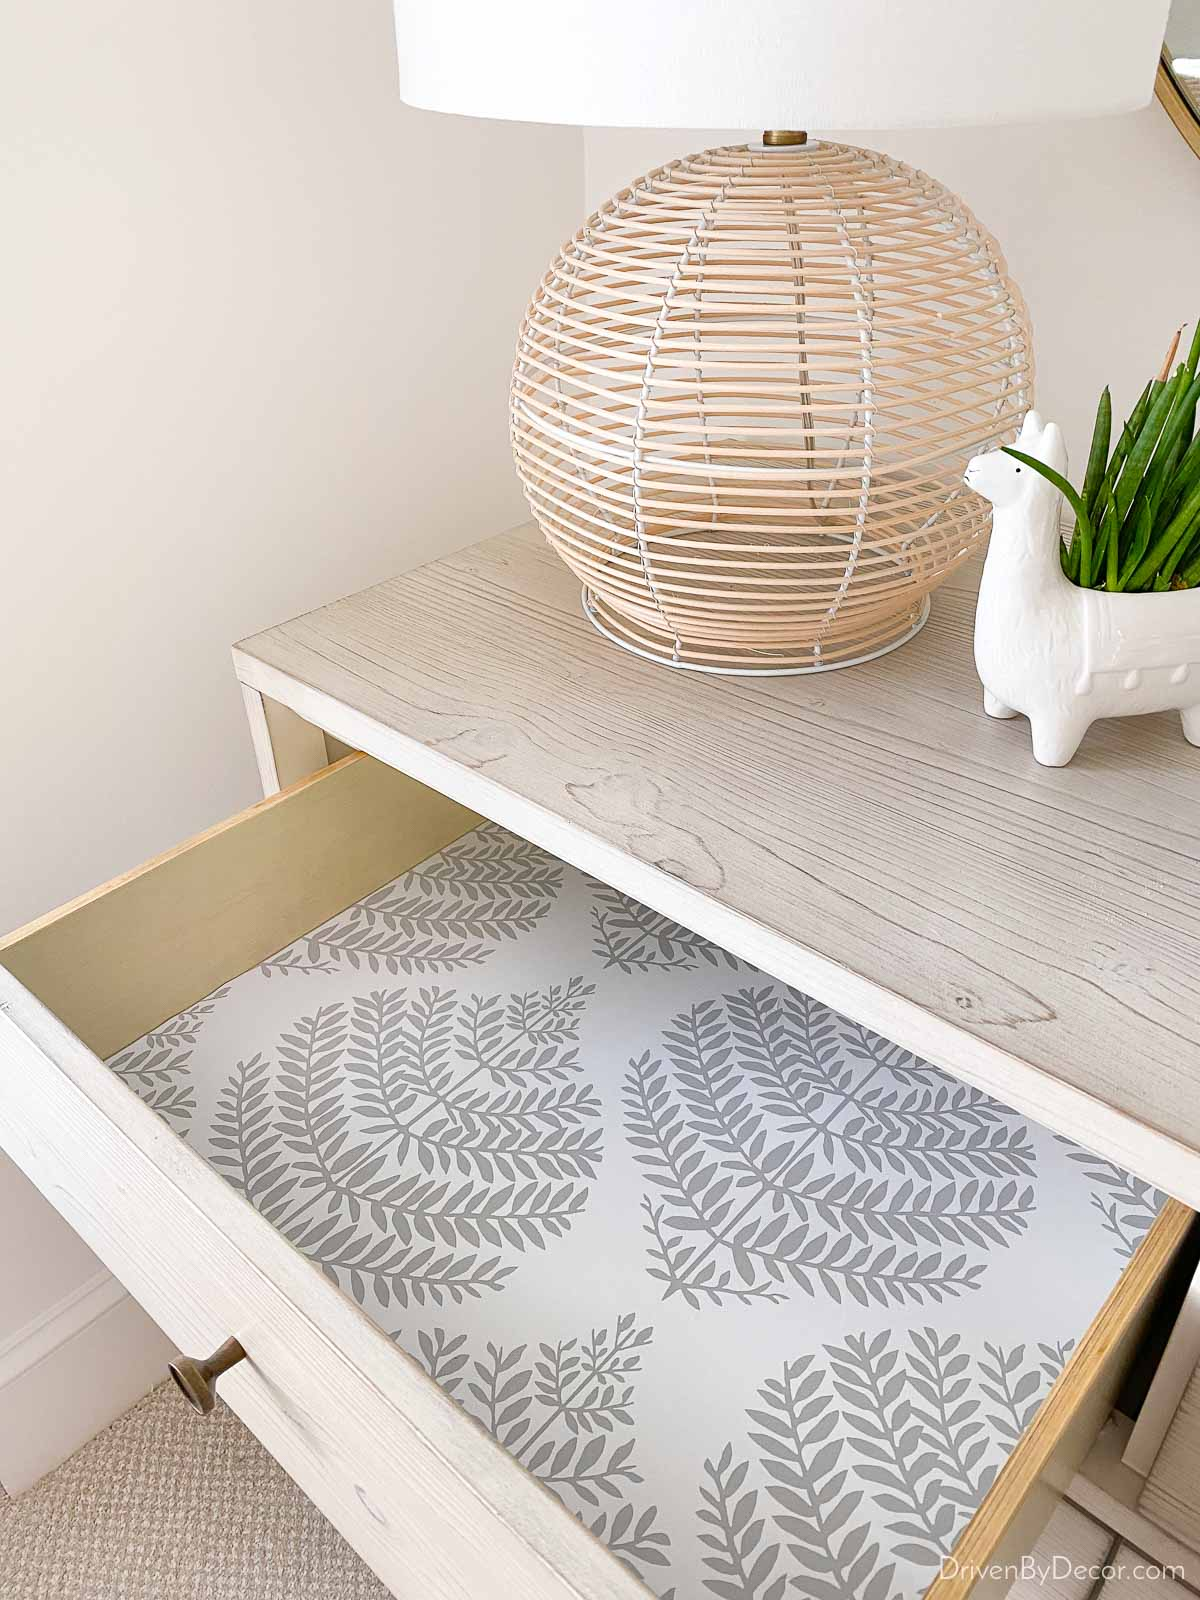 Love this wallpaper idea of using a favorite peel and stick wallpaper to line your drawers!